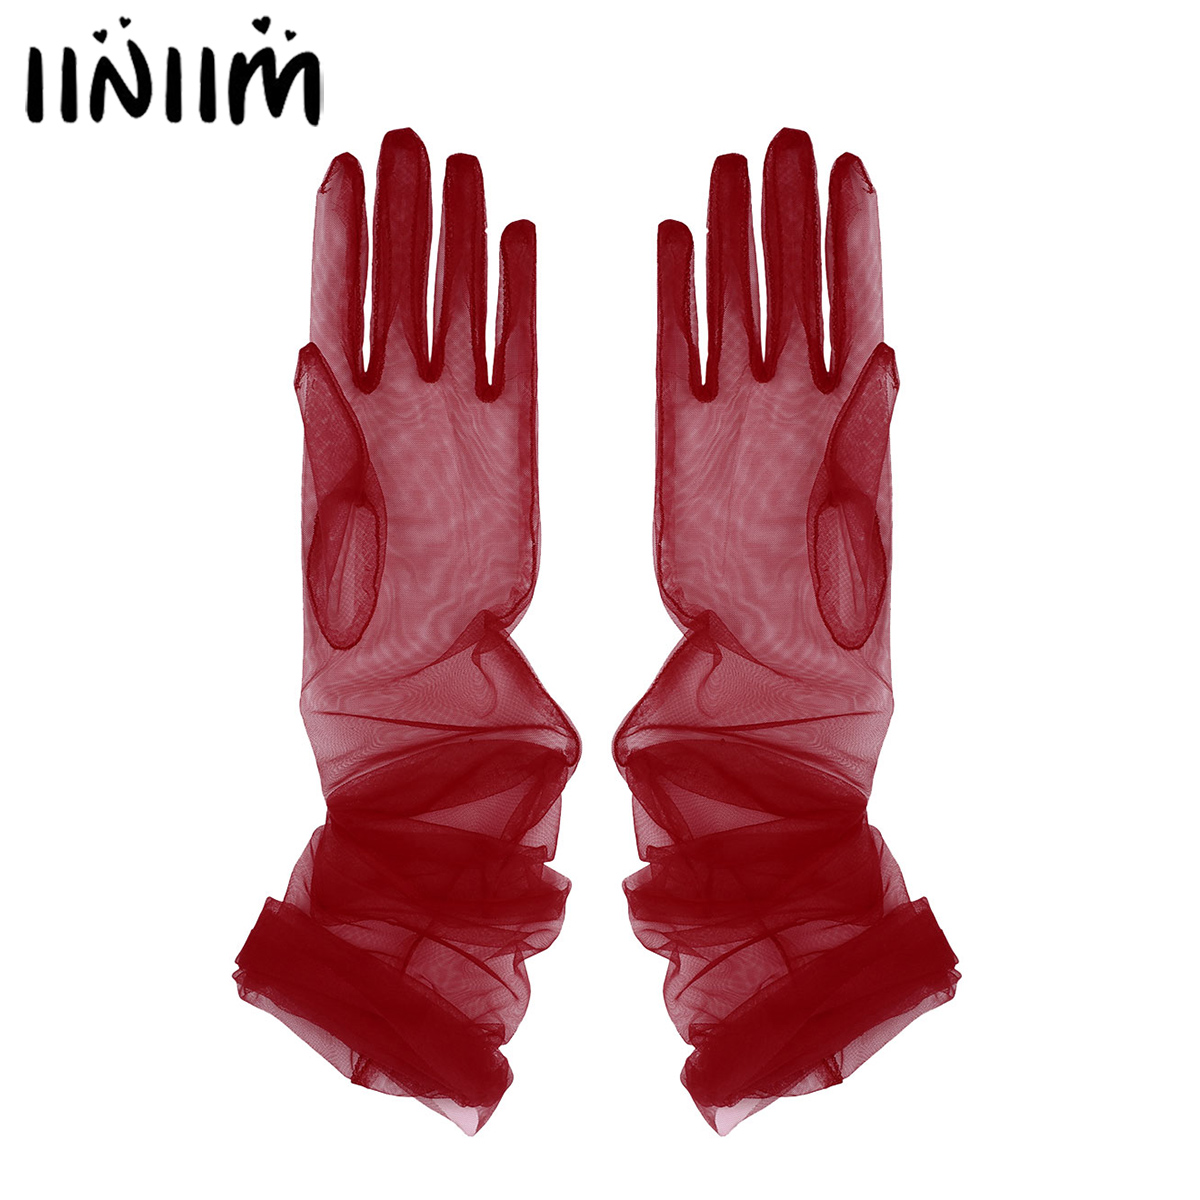 Iiniim Elegant Women Adult Bridal Transparent Tulle Full Finger Long Gloves Mittens For Wedding Party Photography Accessories